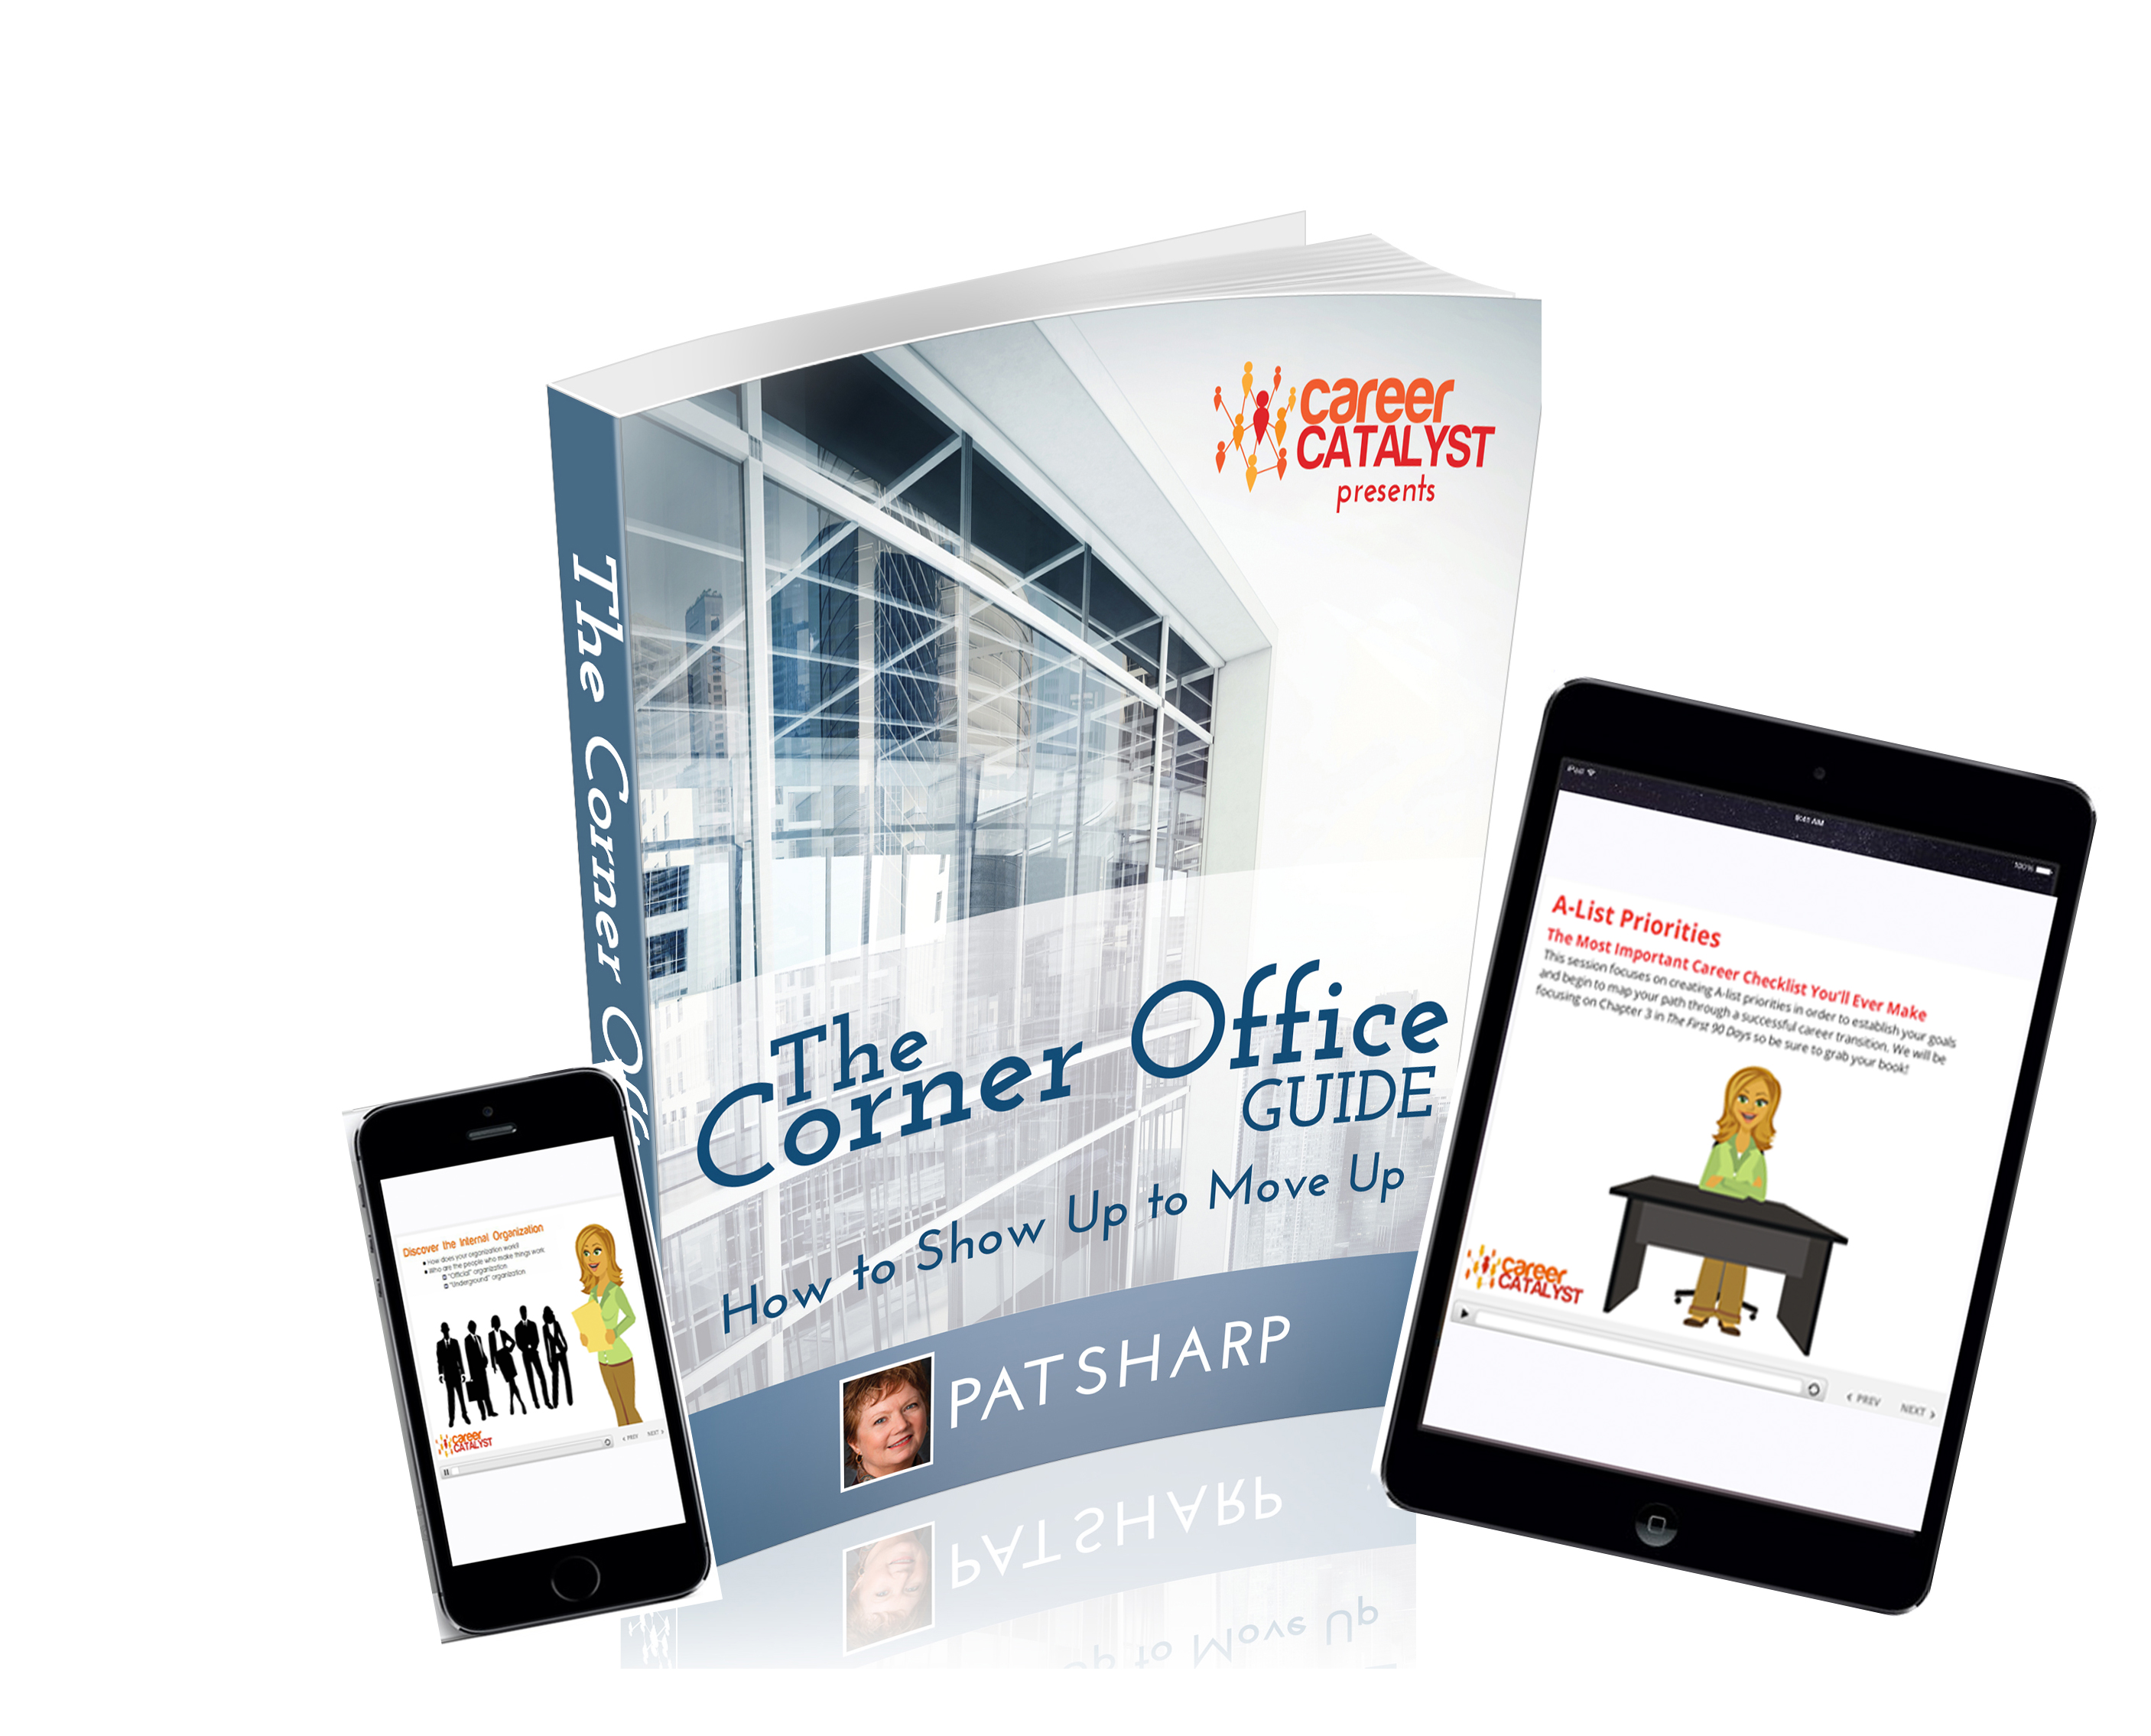 the corner office guide career development your very own headhunter on call in addition at 399 it s affordable the corner office guide is the best investment you can make in your career